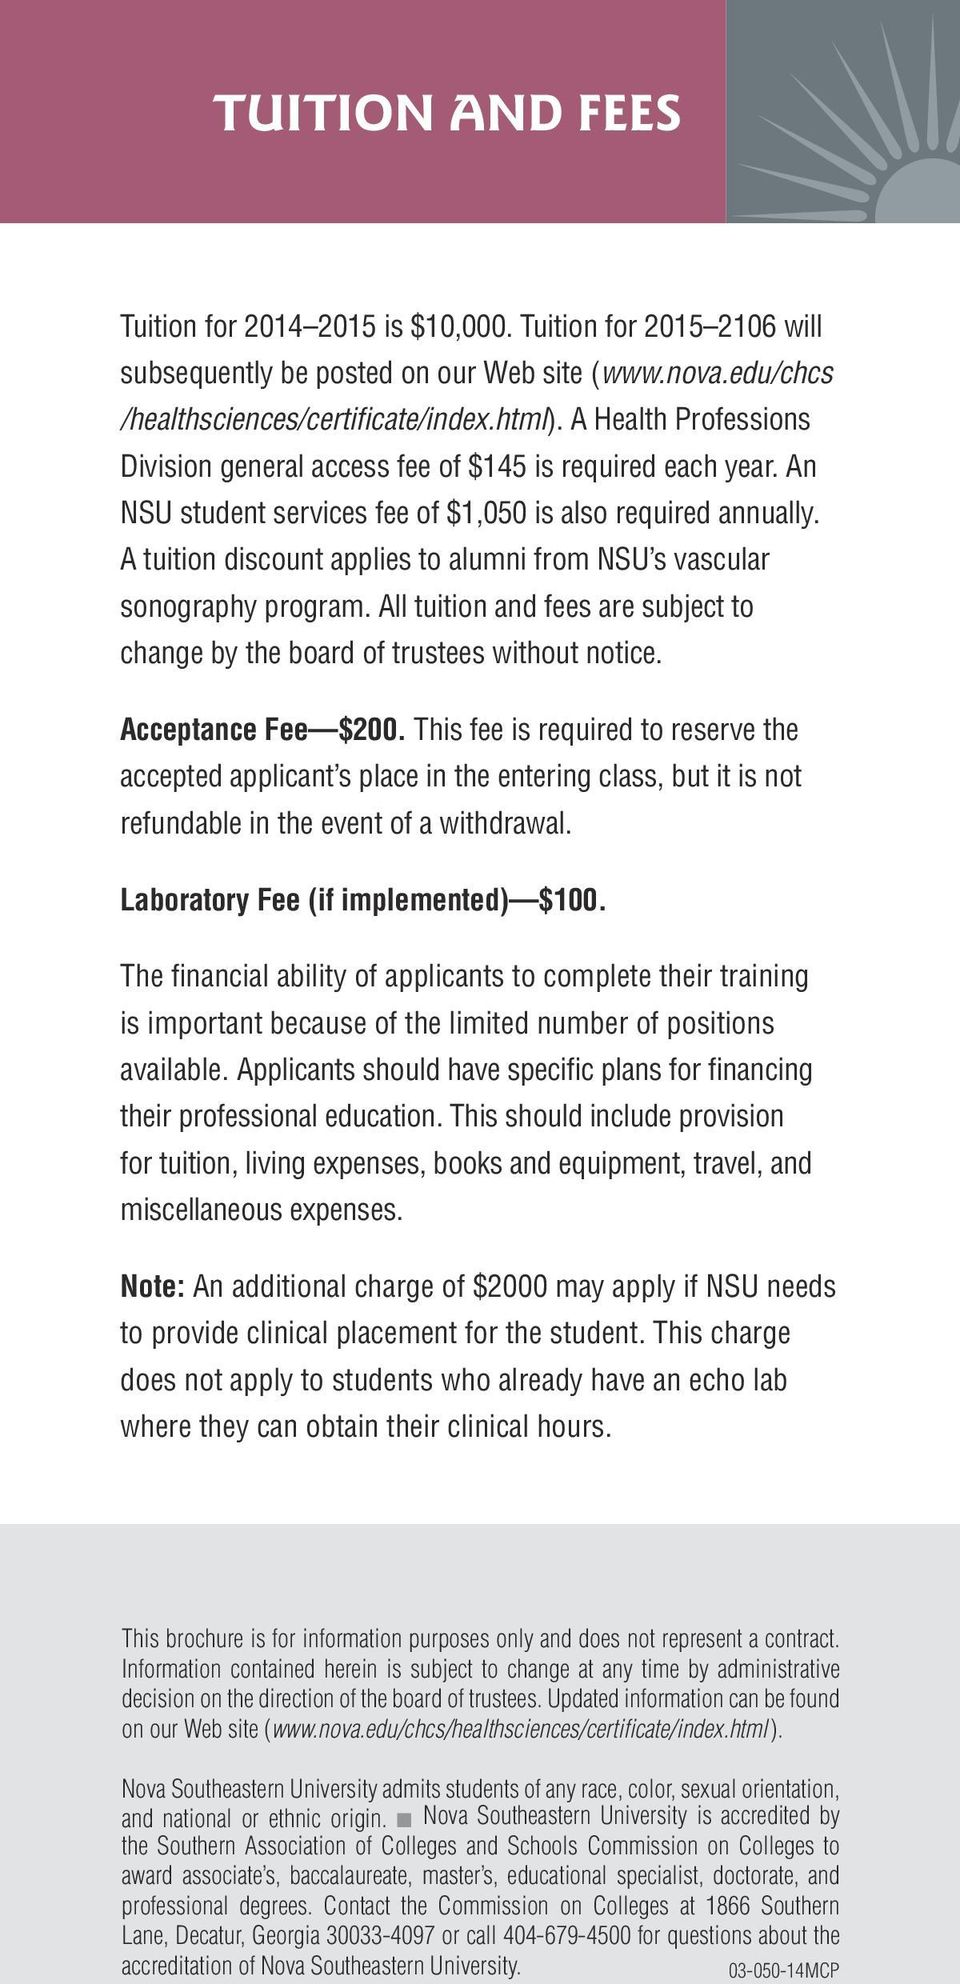 A tuition discount applies to alumni from NSU s vascular sonography program. All tuition and fees are subject to change by the board of trustees without notice. Acceptance Fee $200.